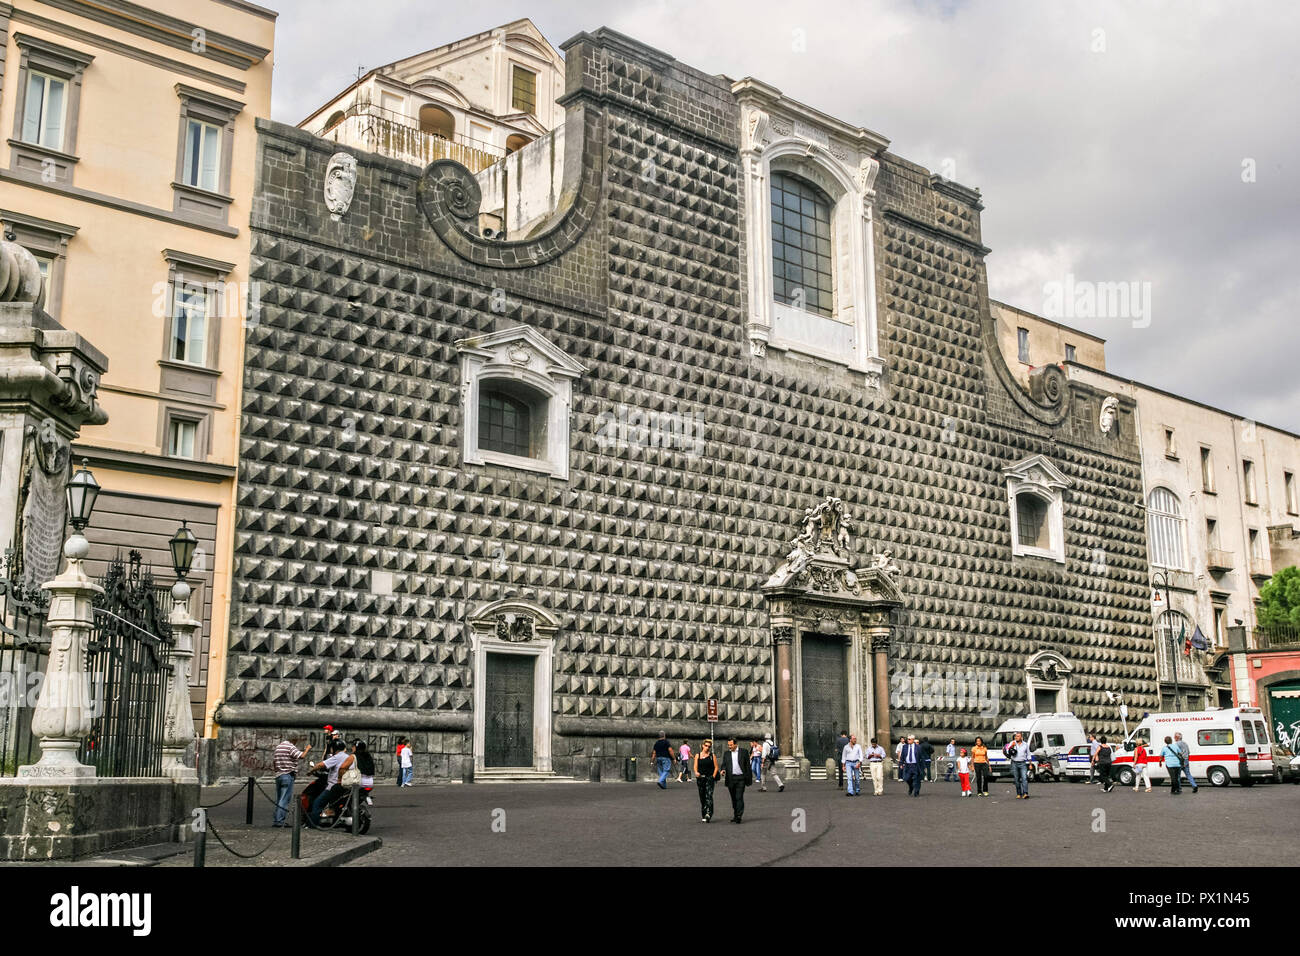 The Church of Gesu Nuovoin Naples, southern Italy. The Church of Gesu Nuovo was originally a palace built in 1470 for Roberto Sanseverino, Prince of Salerno. The unusual building is faced with with rustic ashlar diamond projections. Stock Photo